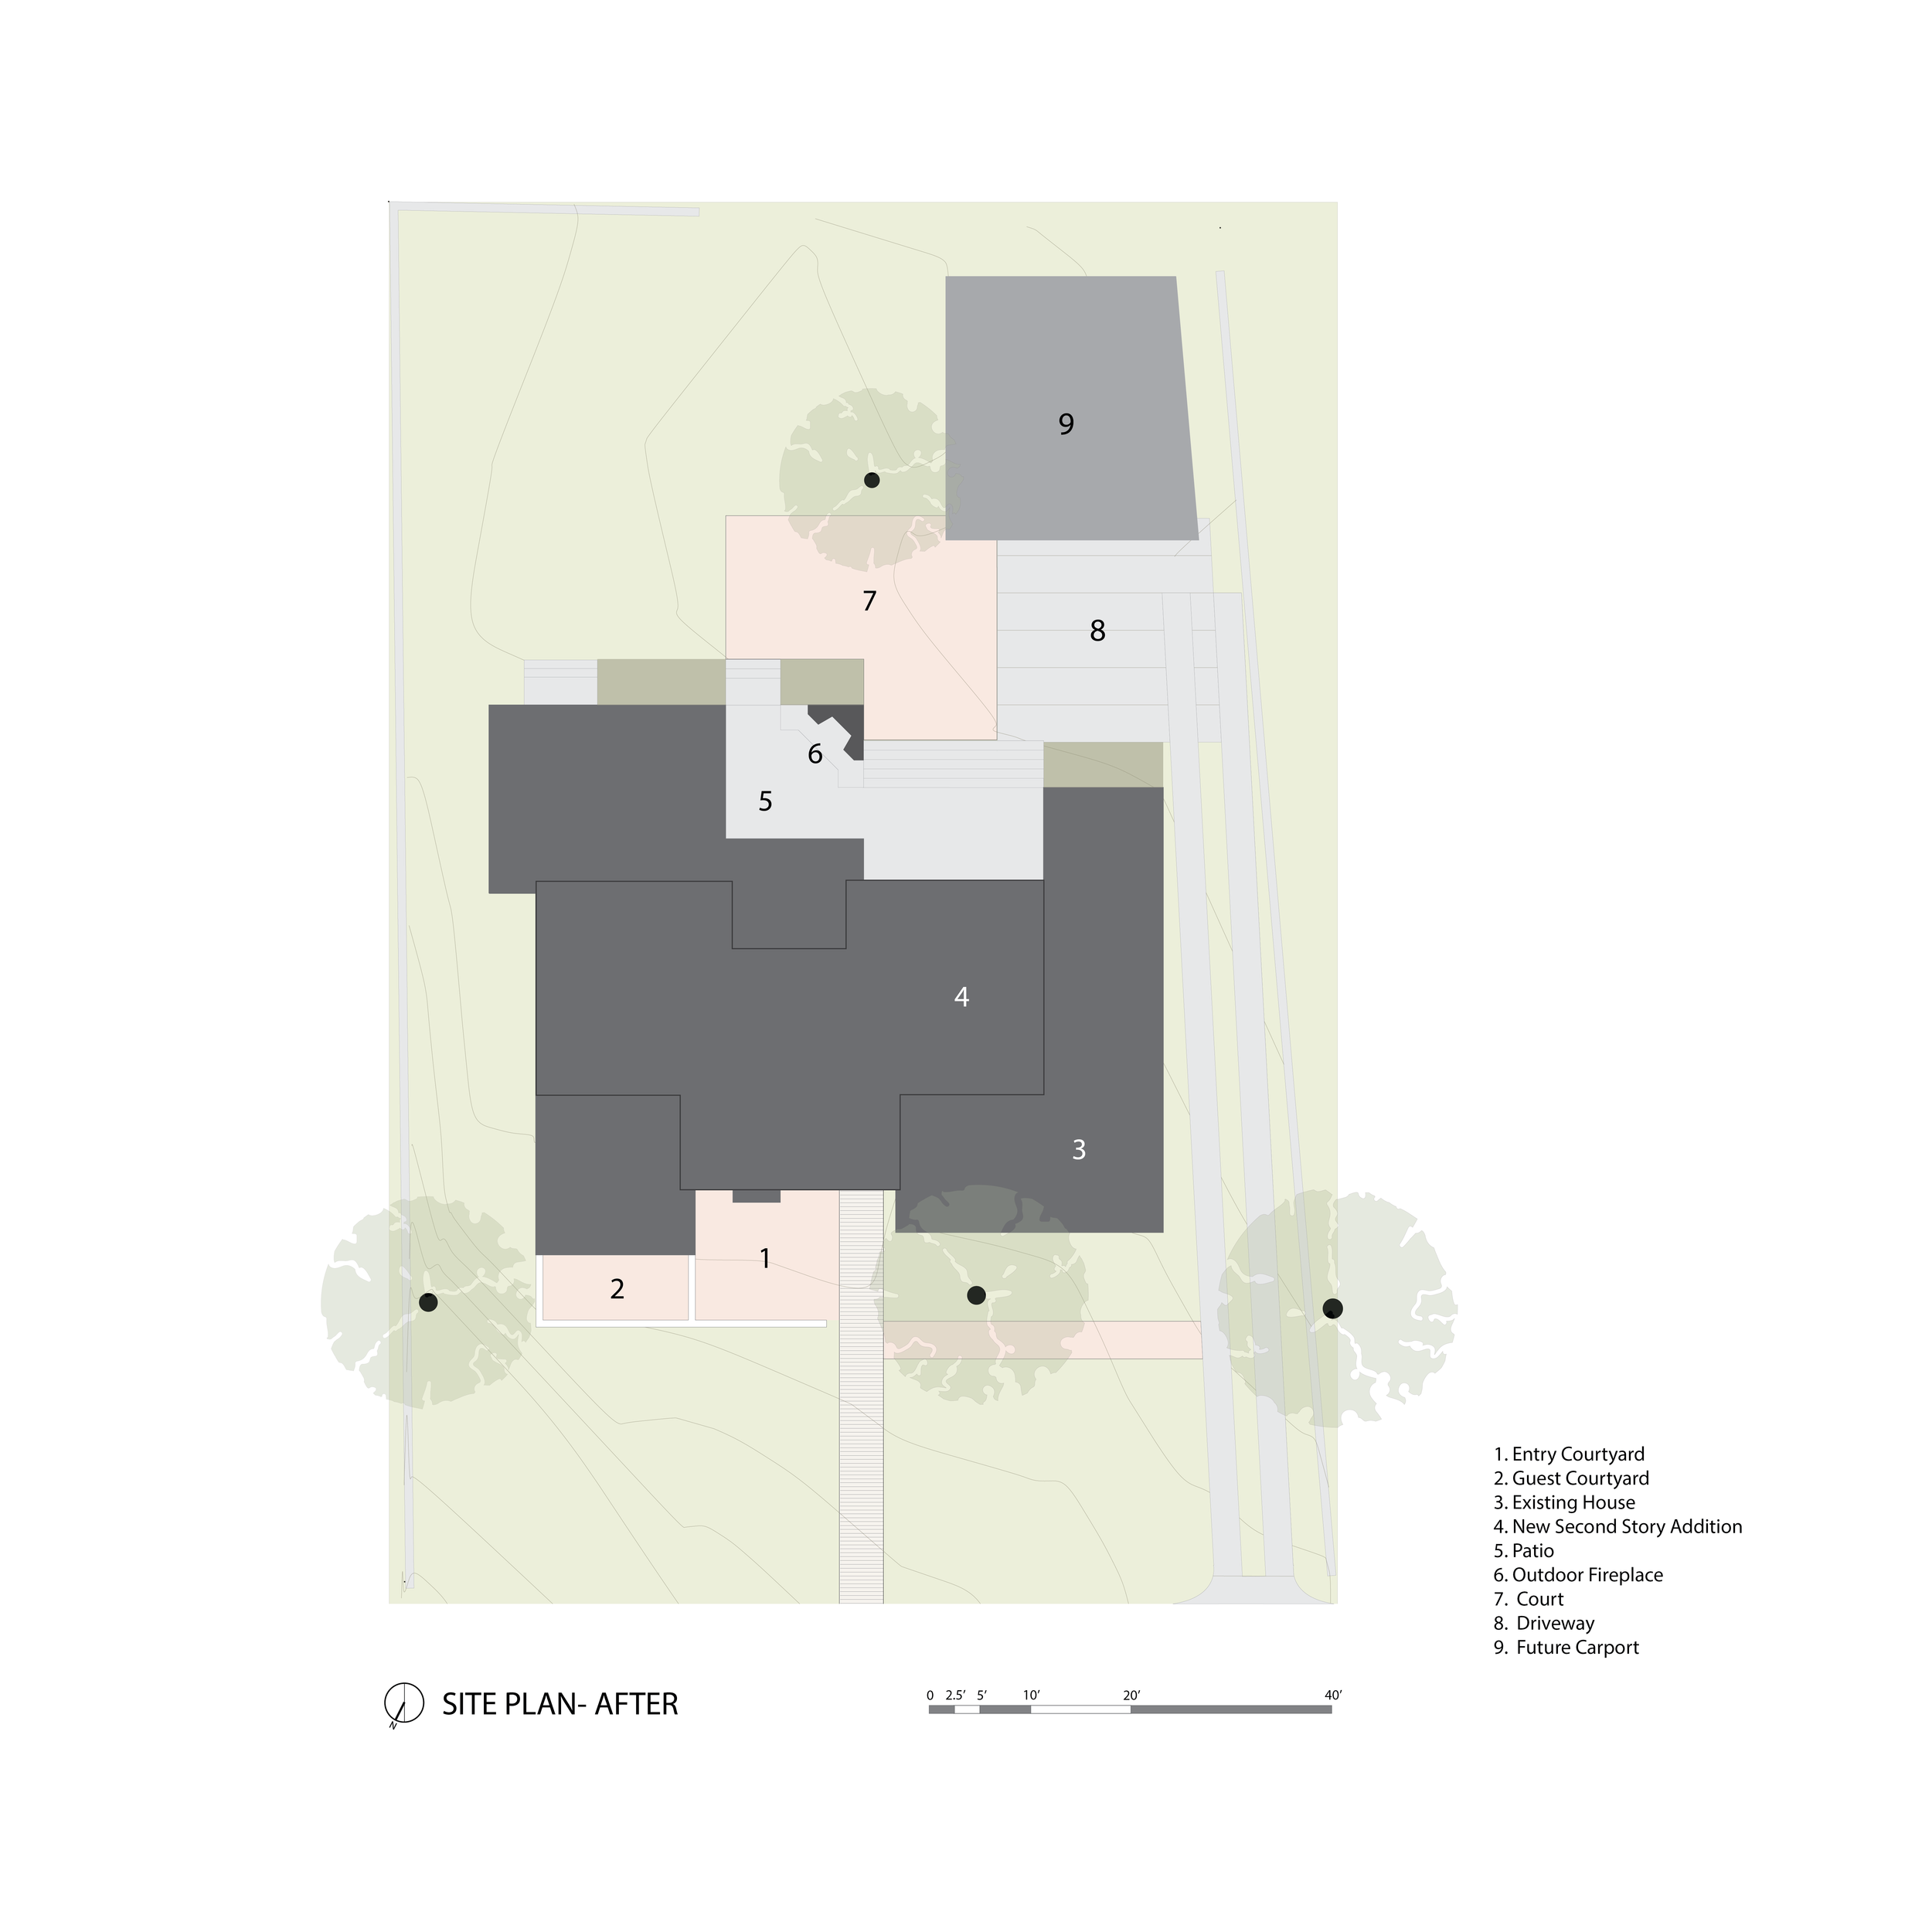 Elizabeth-Baird-Architecture-Southhill- site plan after.png